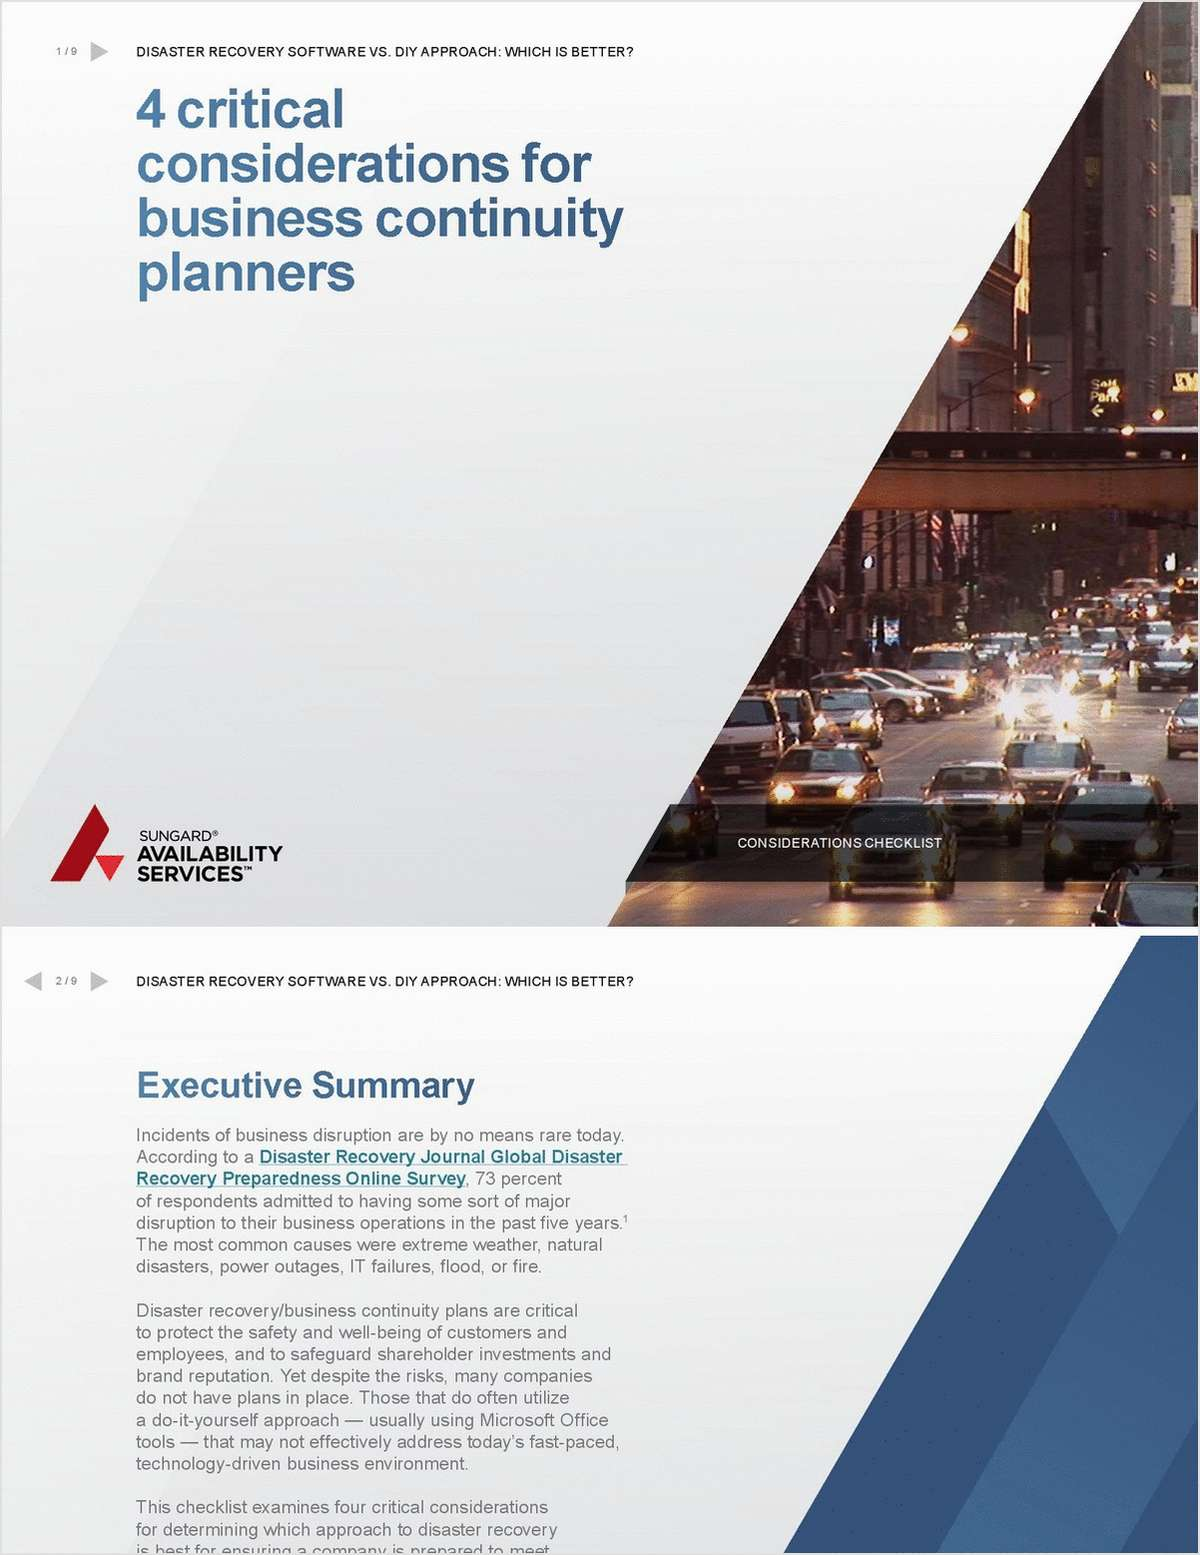 Four Critical Considerations for Determining the Best Business Continuity Plan Approach